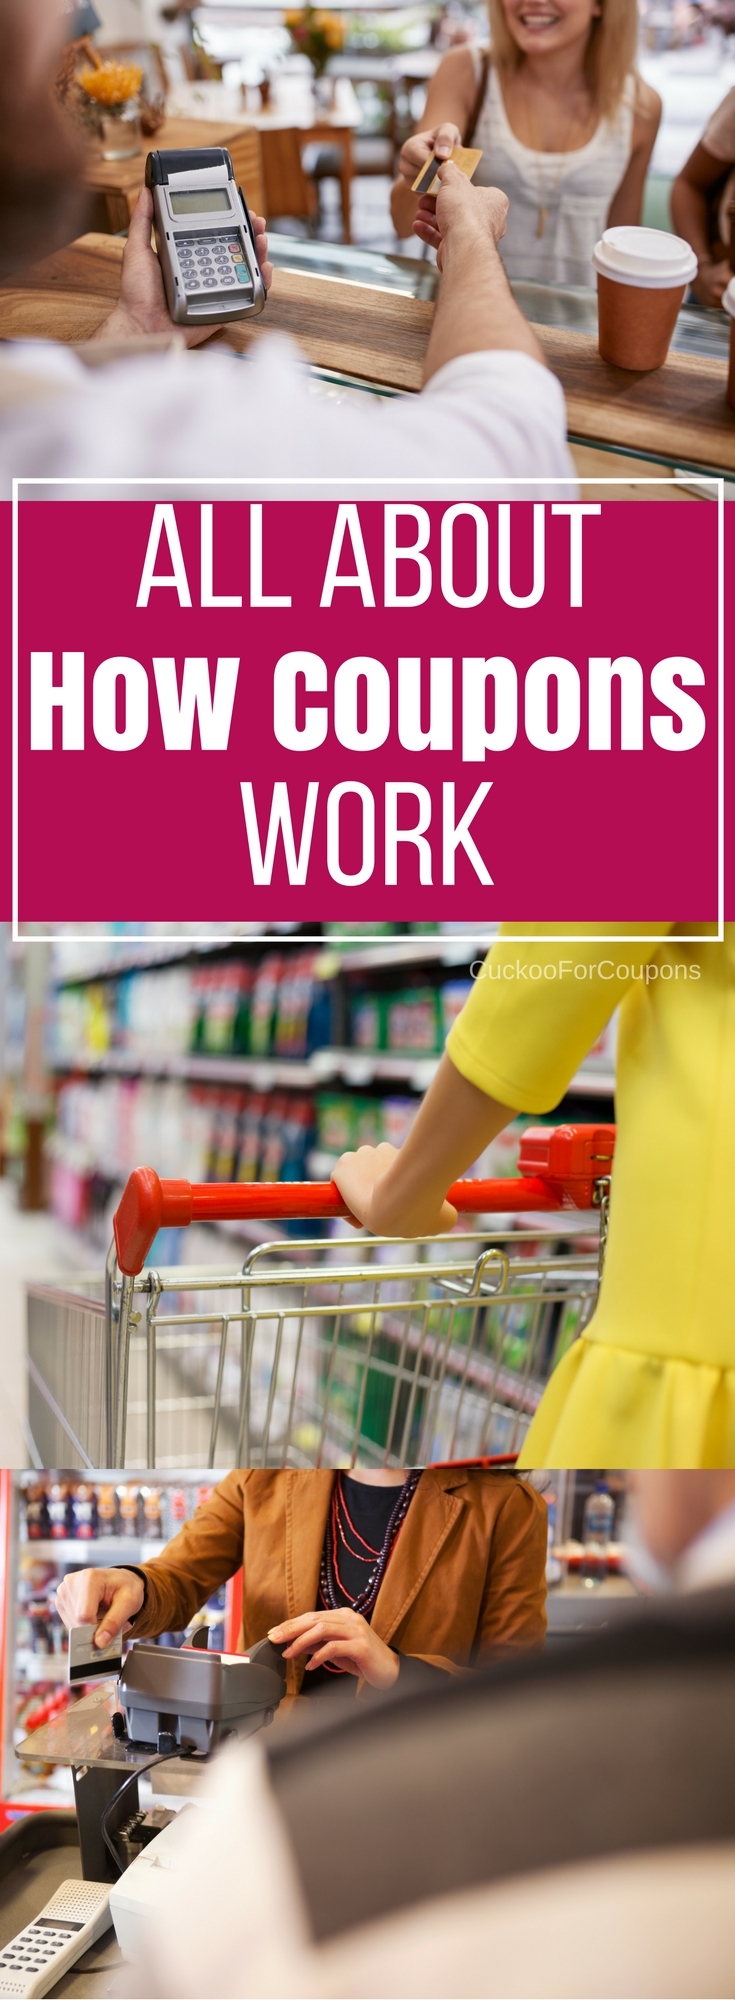 all-about-how-coupons-work-1